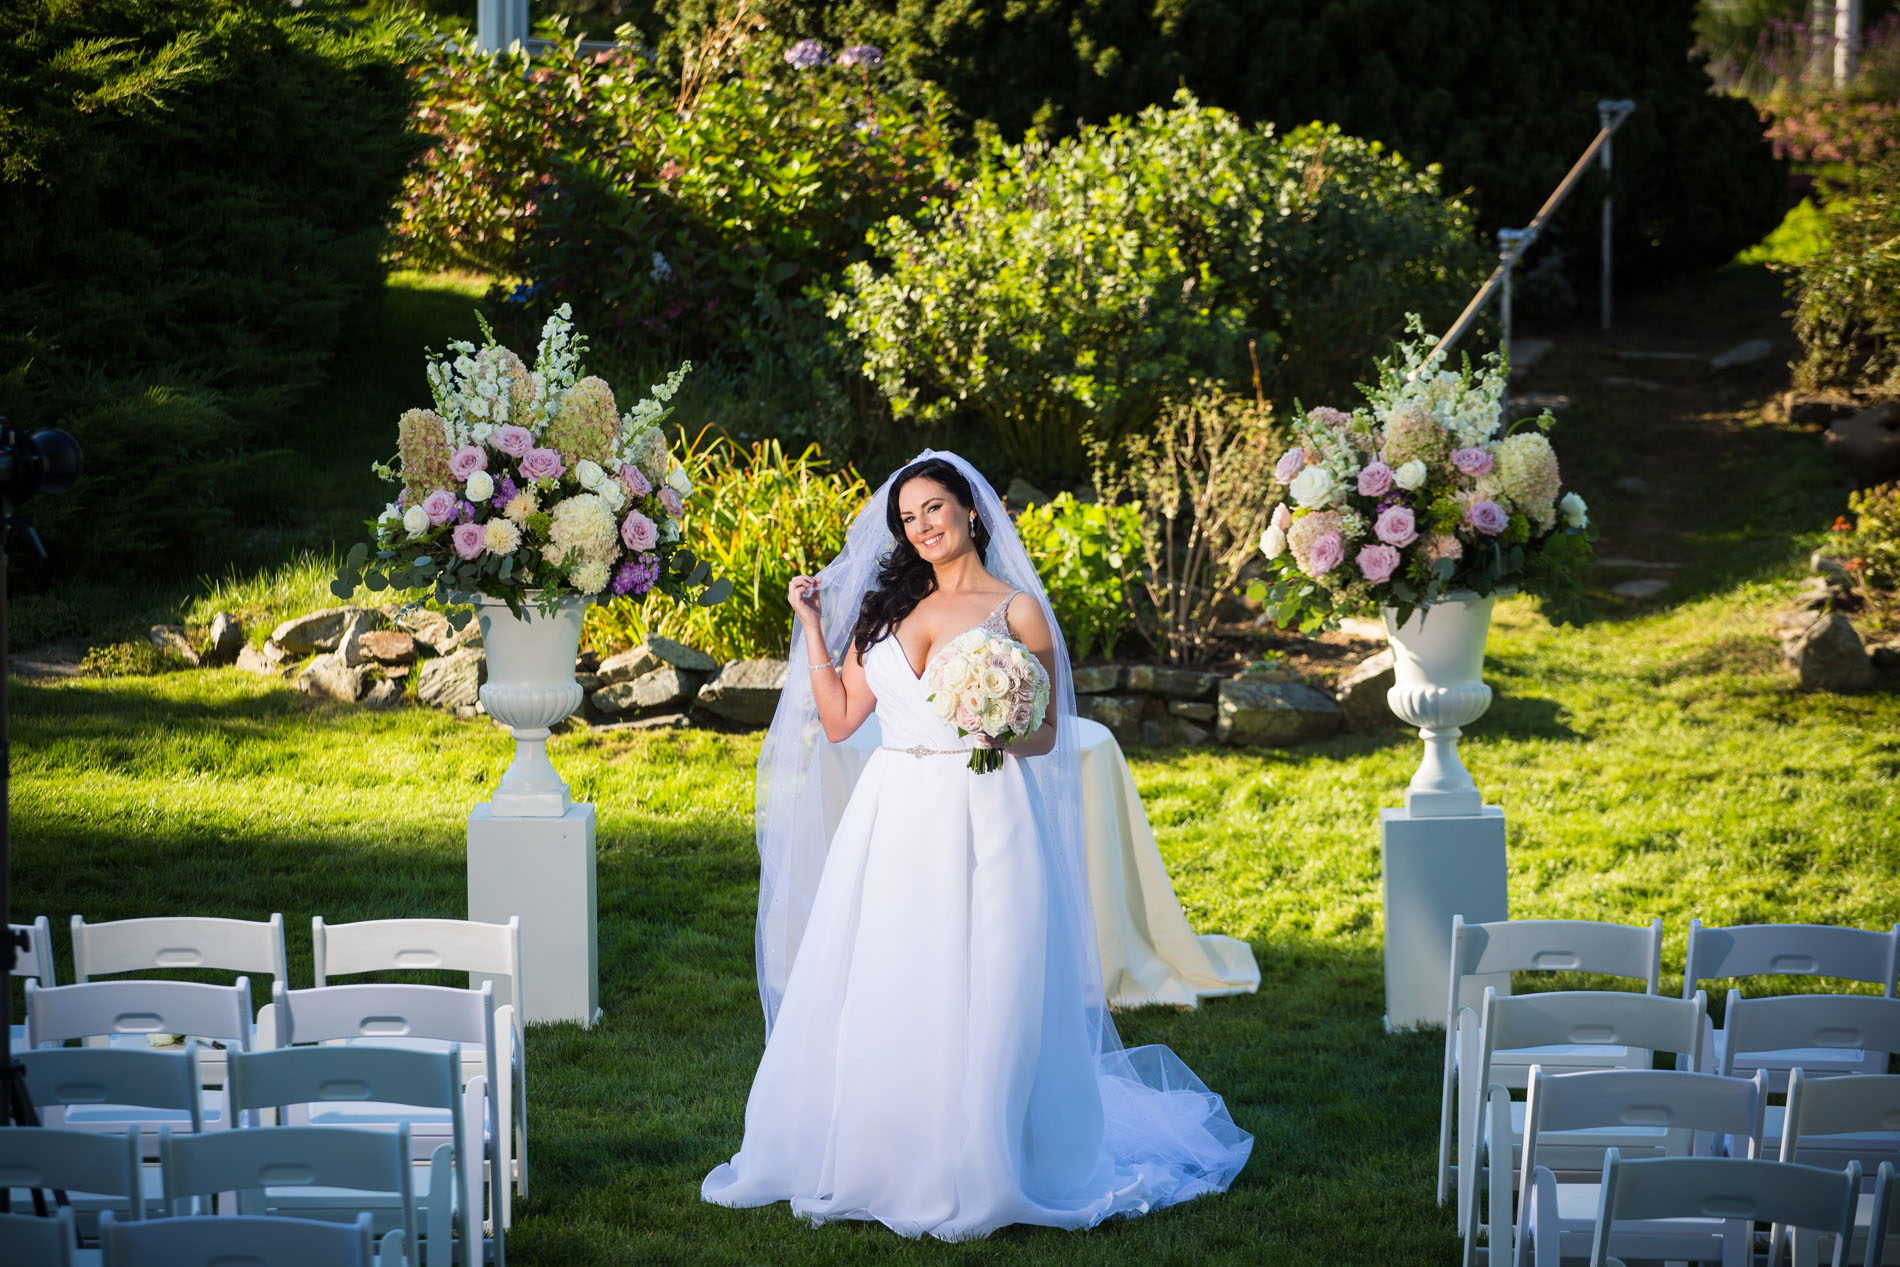 Favorite Wedding Pictures from Wentworth bride before ceremony